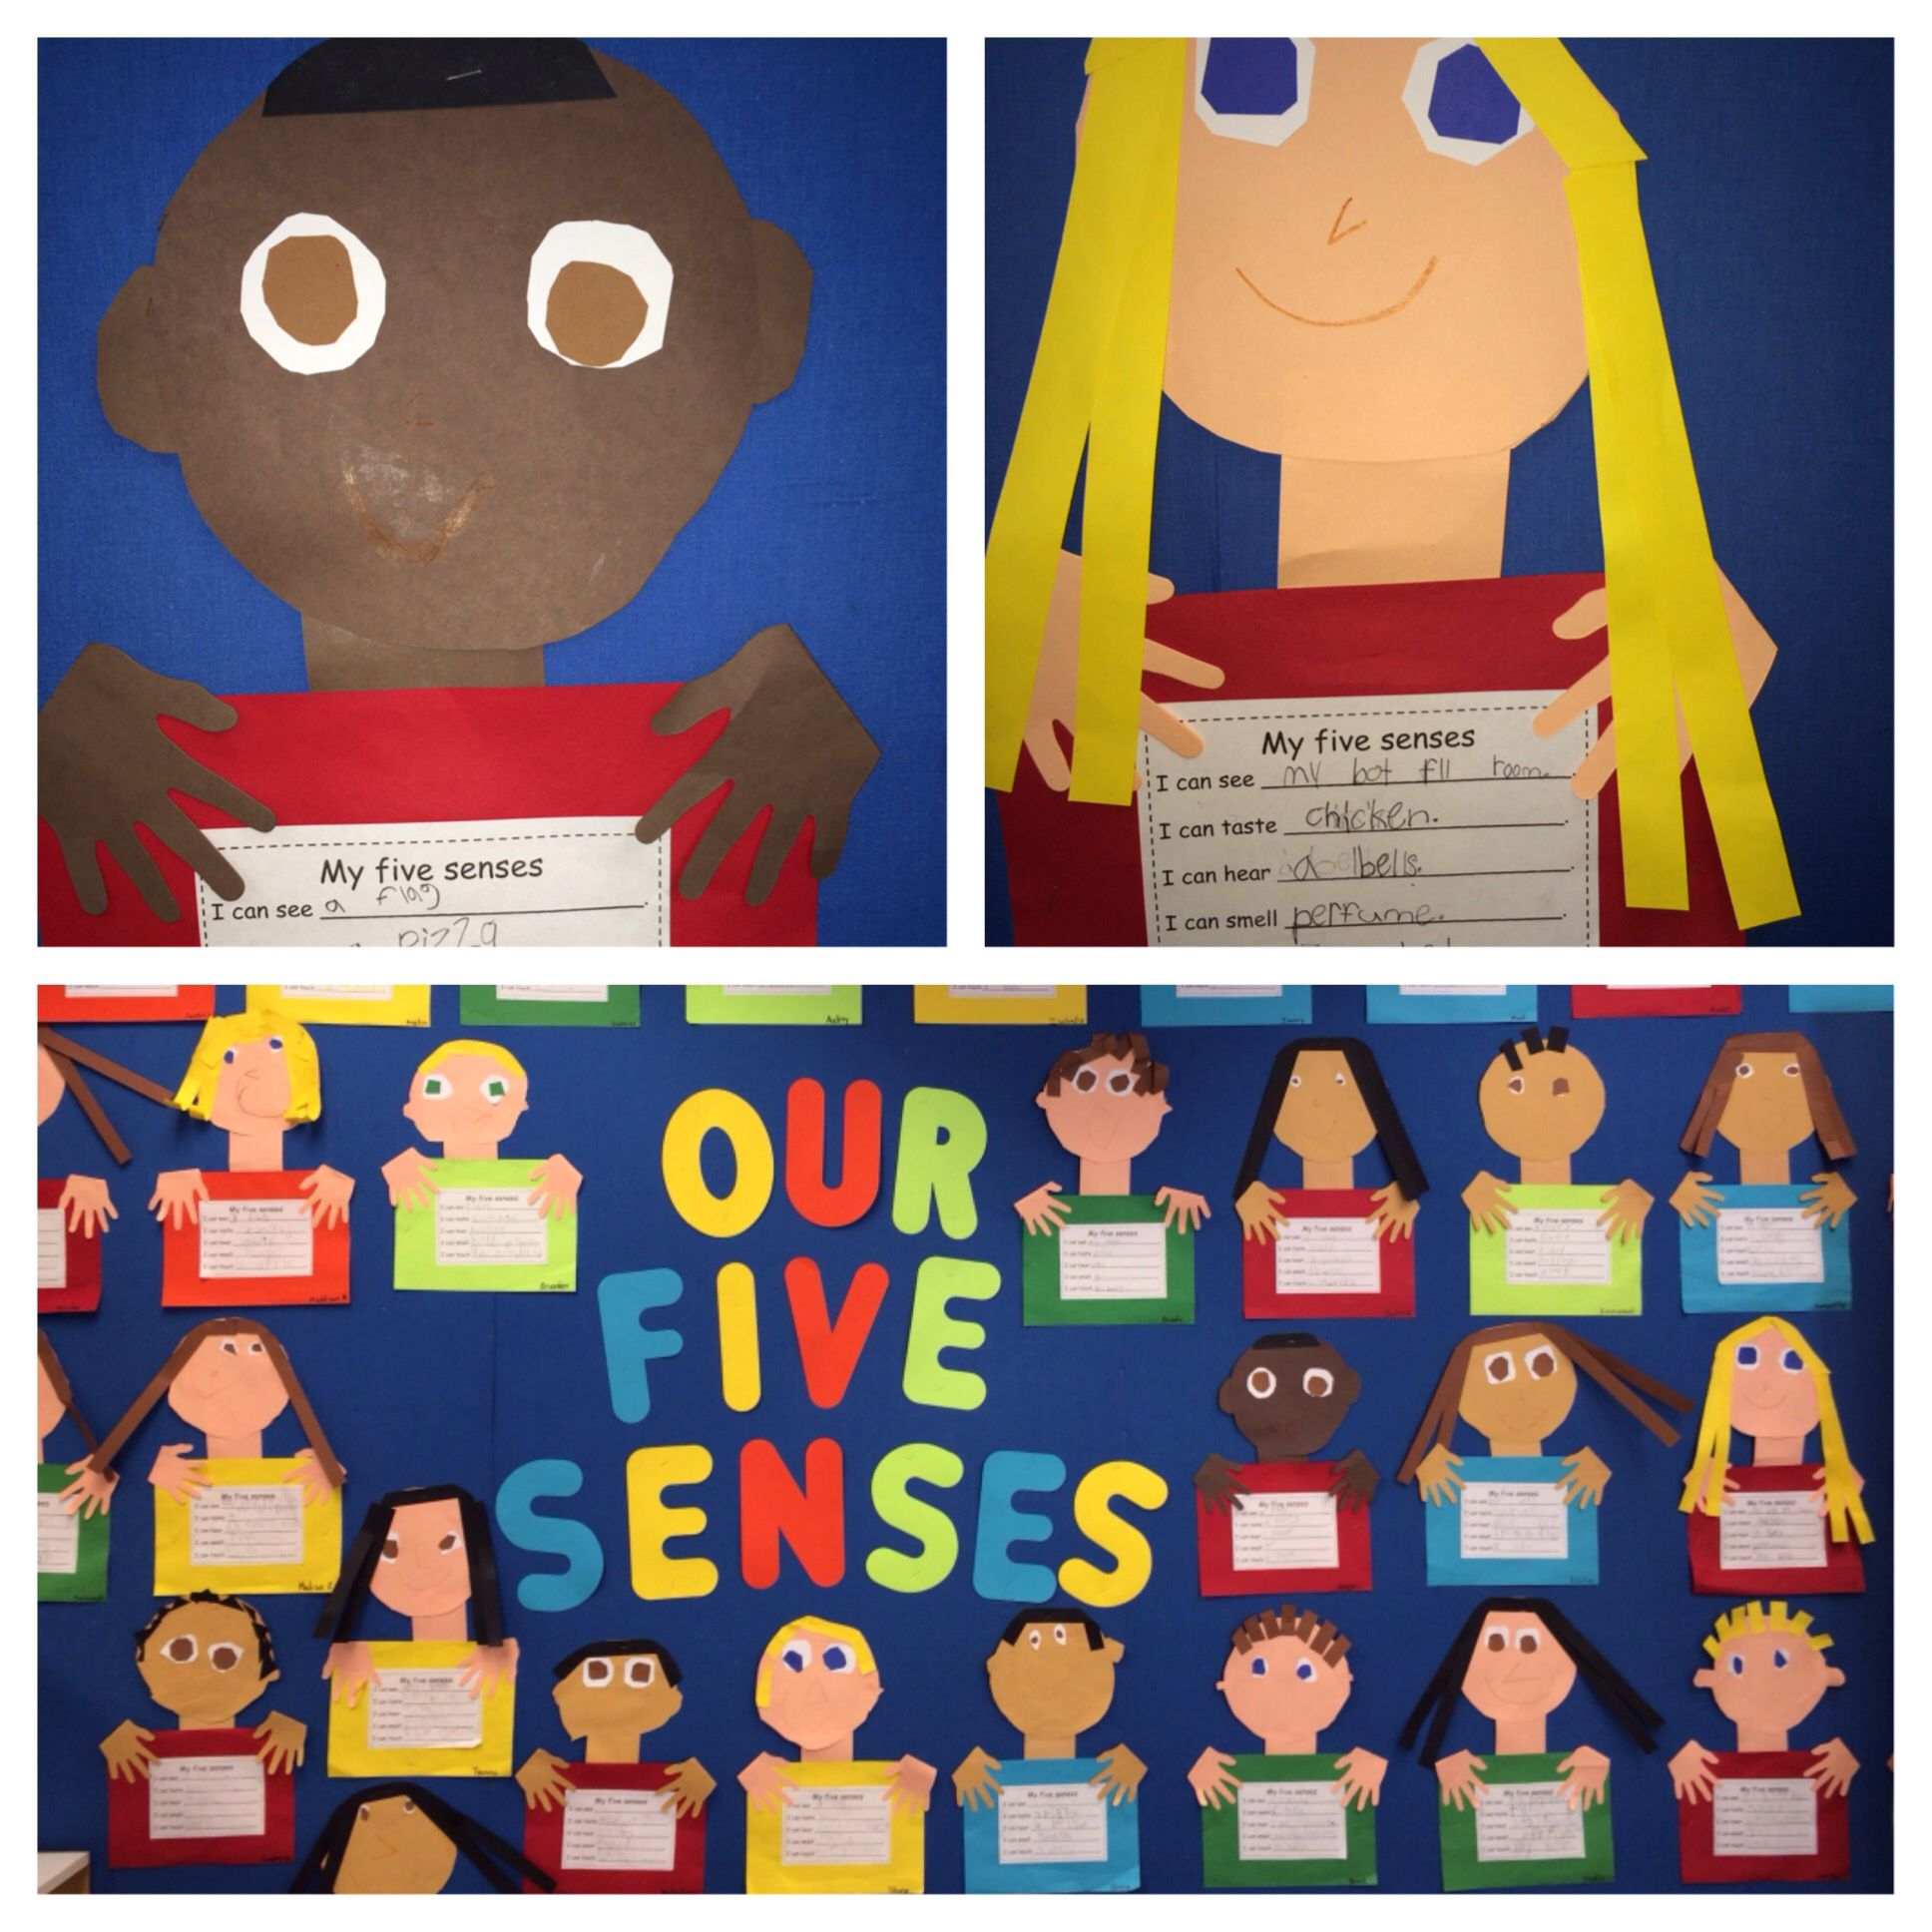 Five Senses Project The Students Made A Self Portrait And